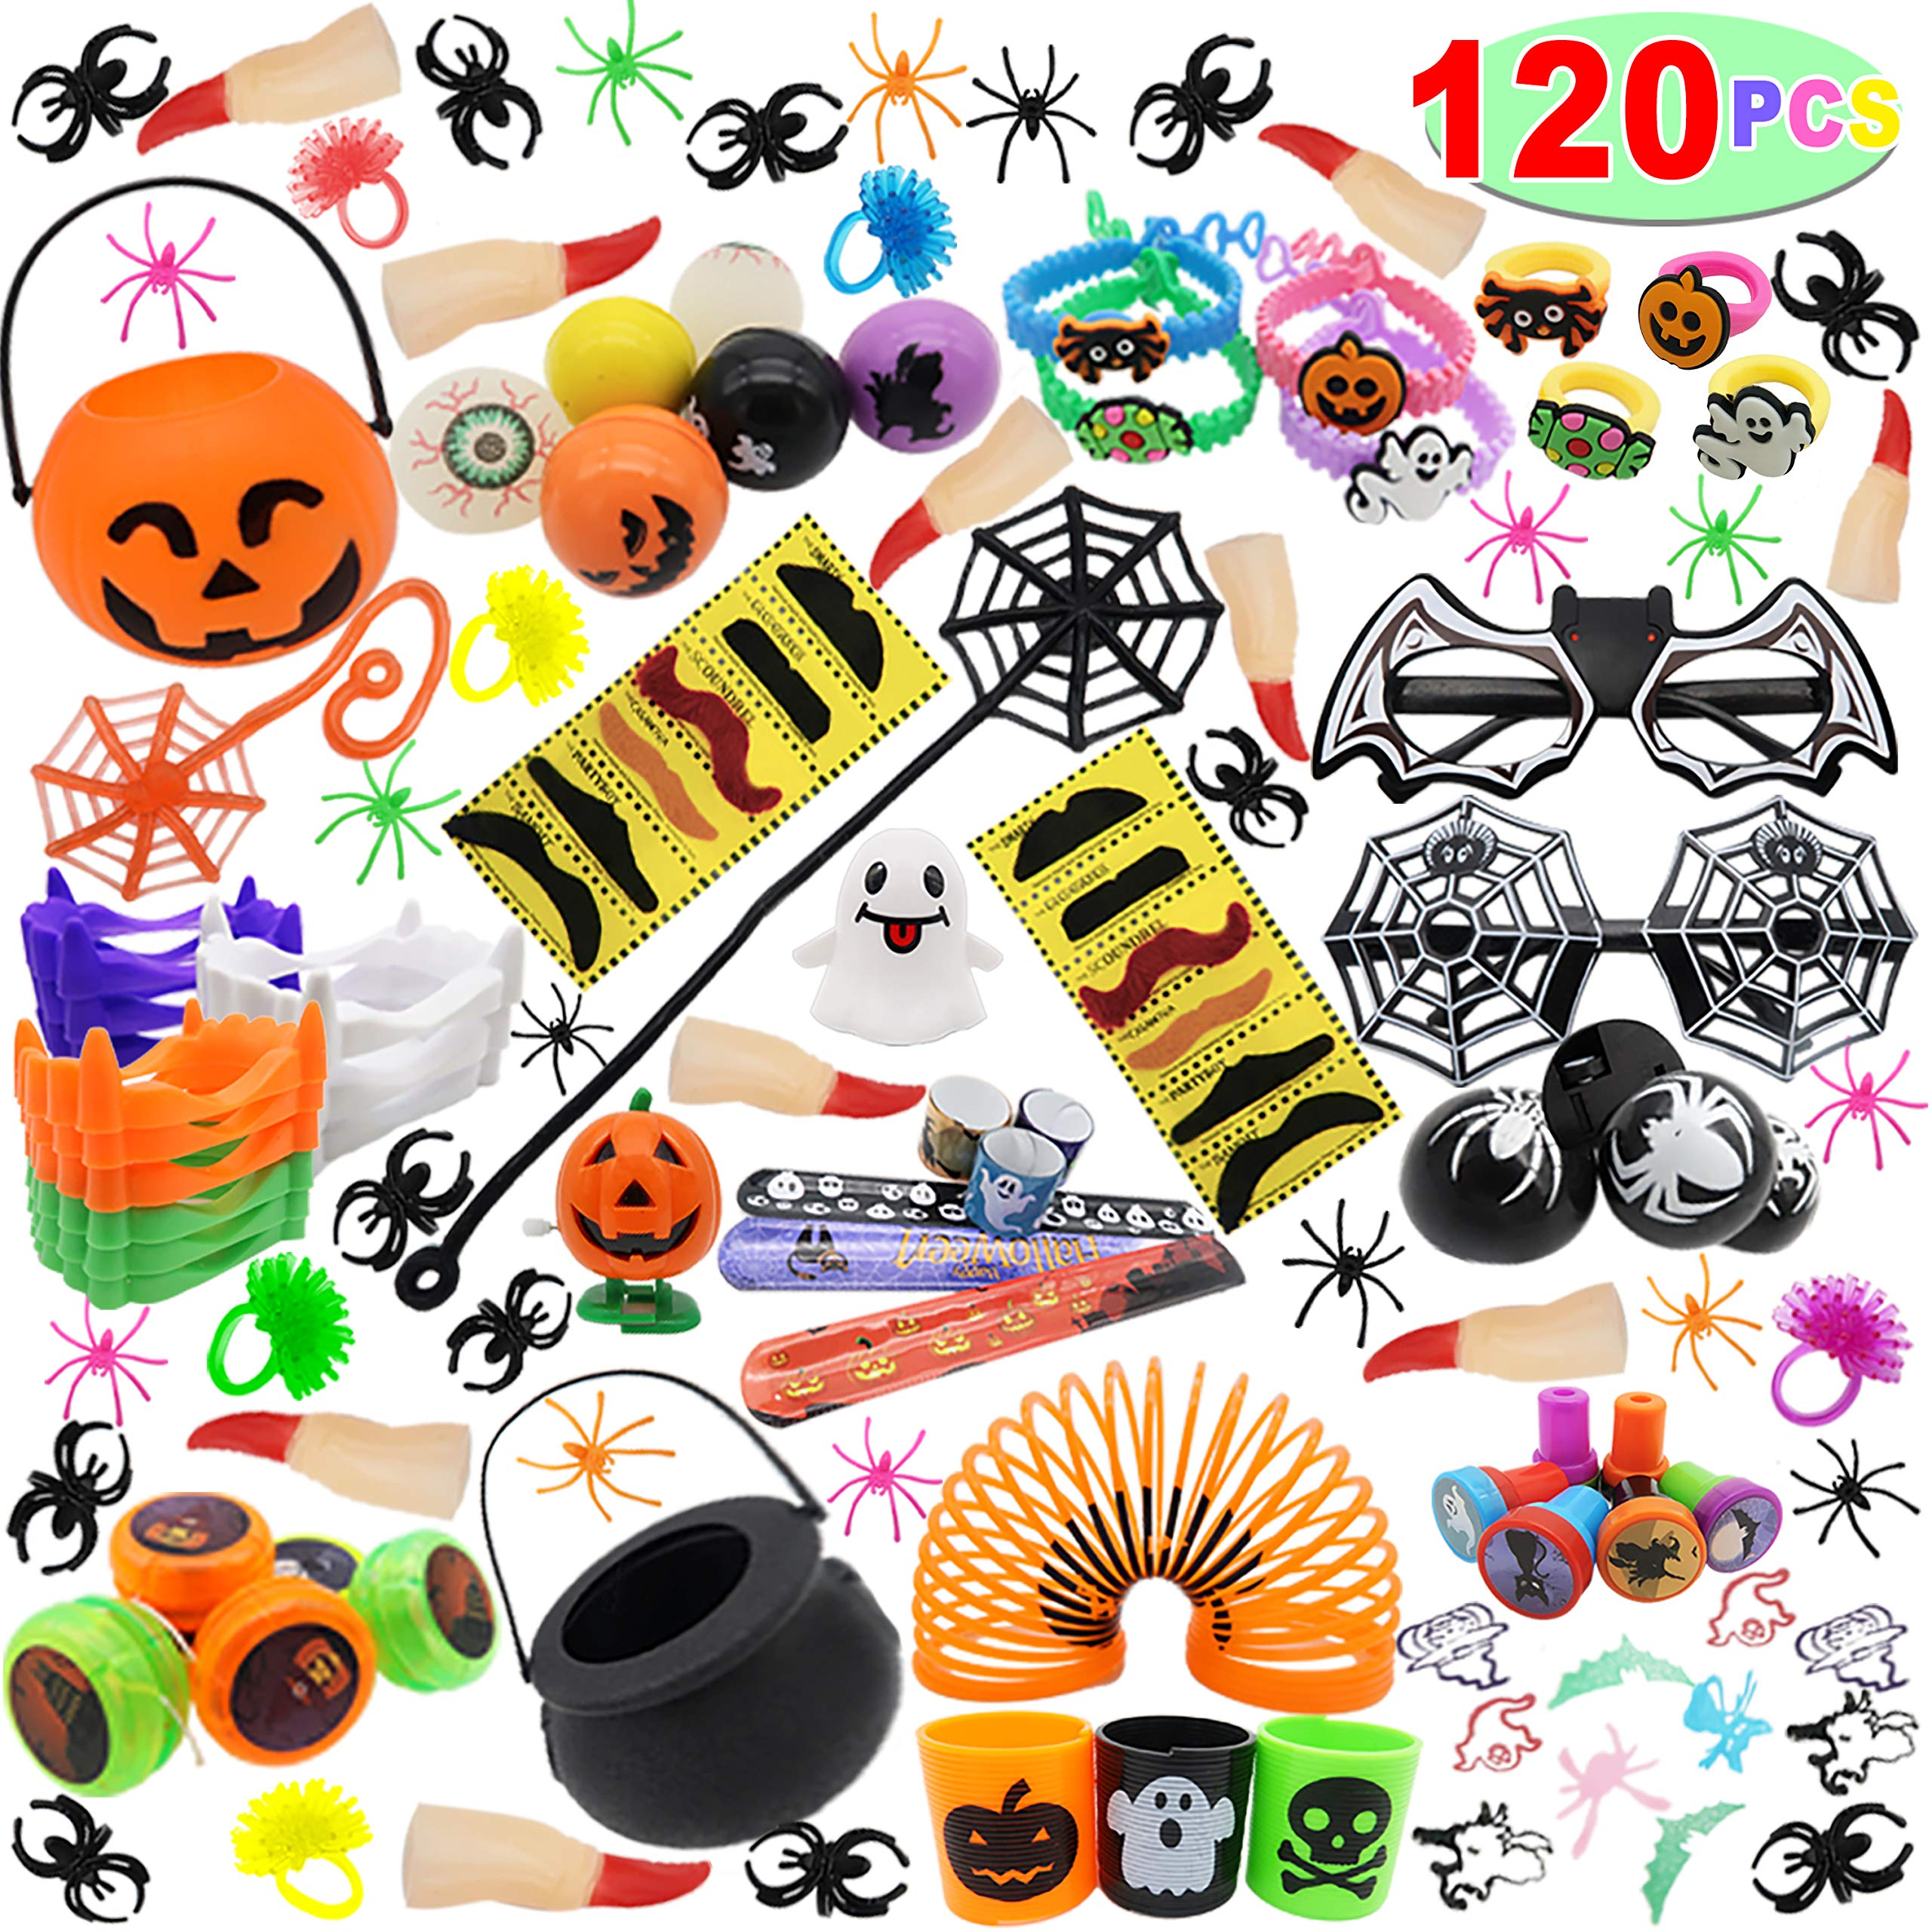 120 PCs Halloween Assortment Party Favors Toys for Halloween Trick or Treat Goody Bags Prizes, Classroom Reward, Miniature Novelty Goodie Bag Fillers, Treasure Chest Toys. by Kiddokids